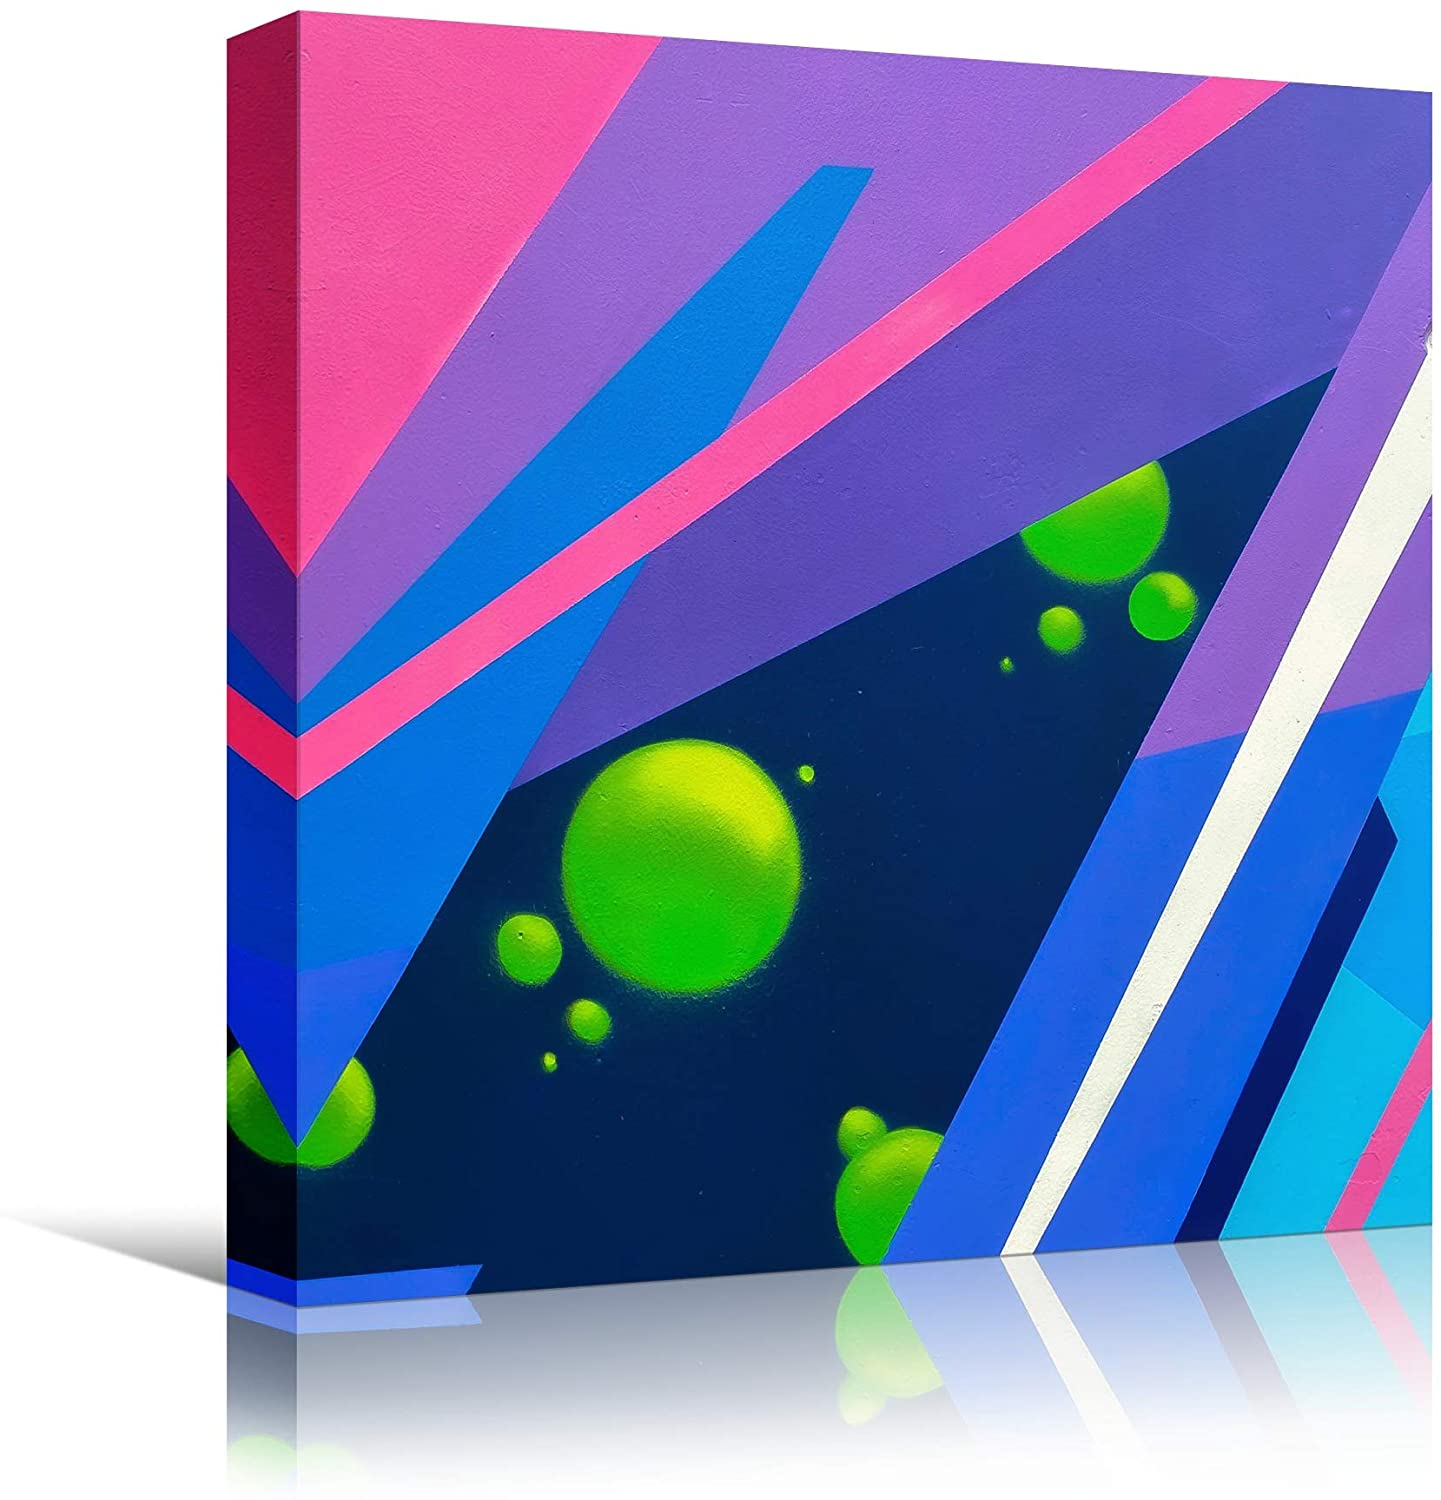 bestdeal depot Illumination XXII Abstract CloseUp Colorful Digital Art Lights Minimalist Multicolor Neon Wall Art Prints for Living Room,Bedroom Ready to Hang - 16x16 inches